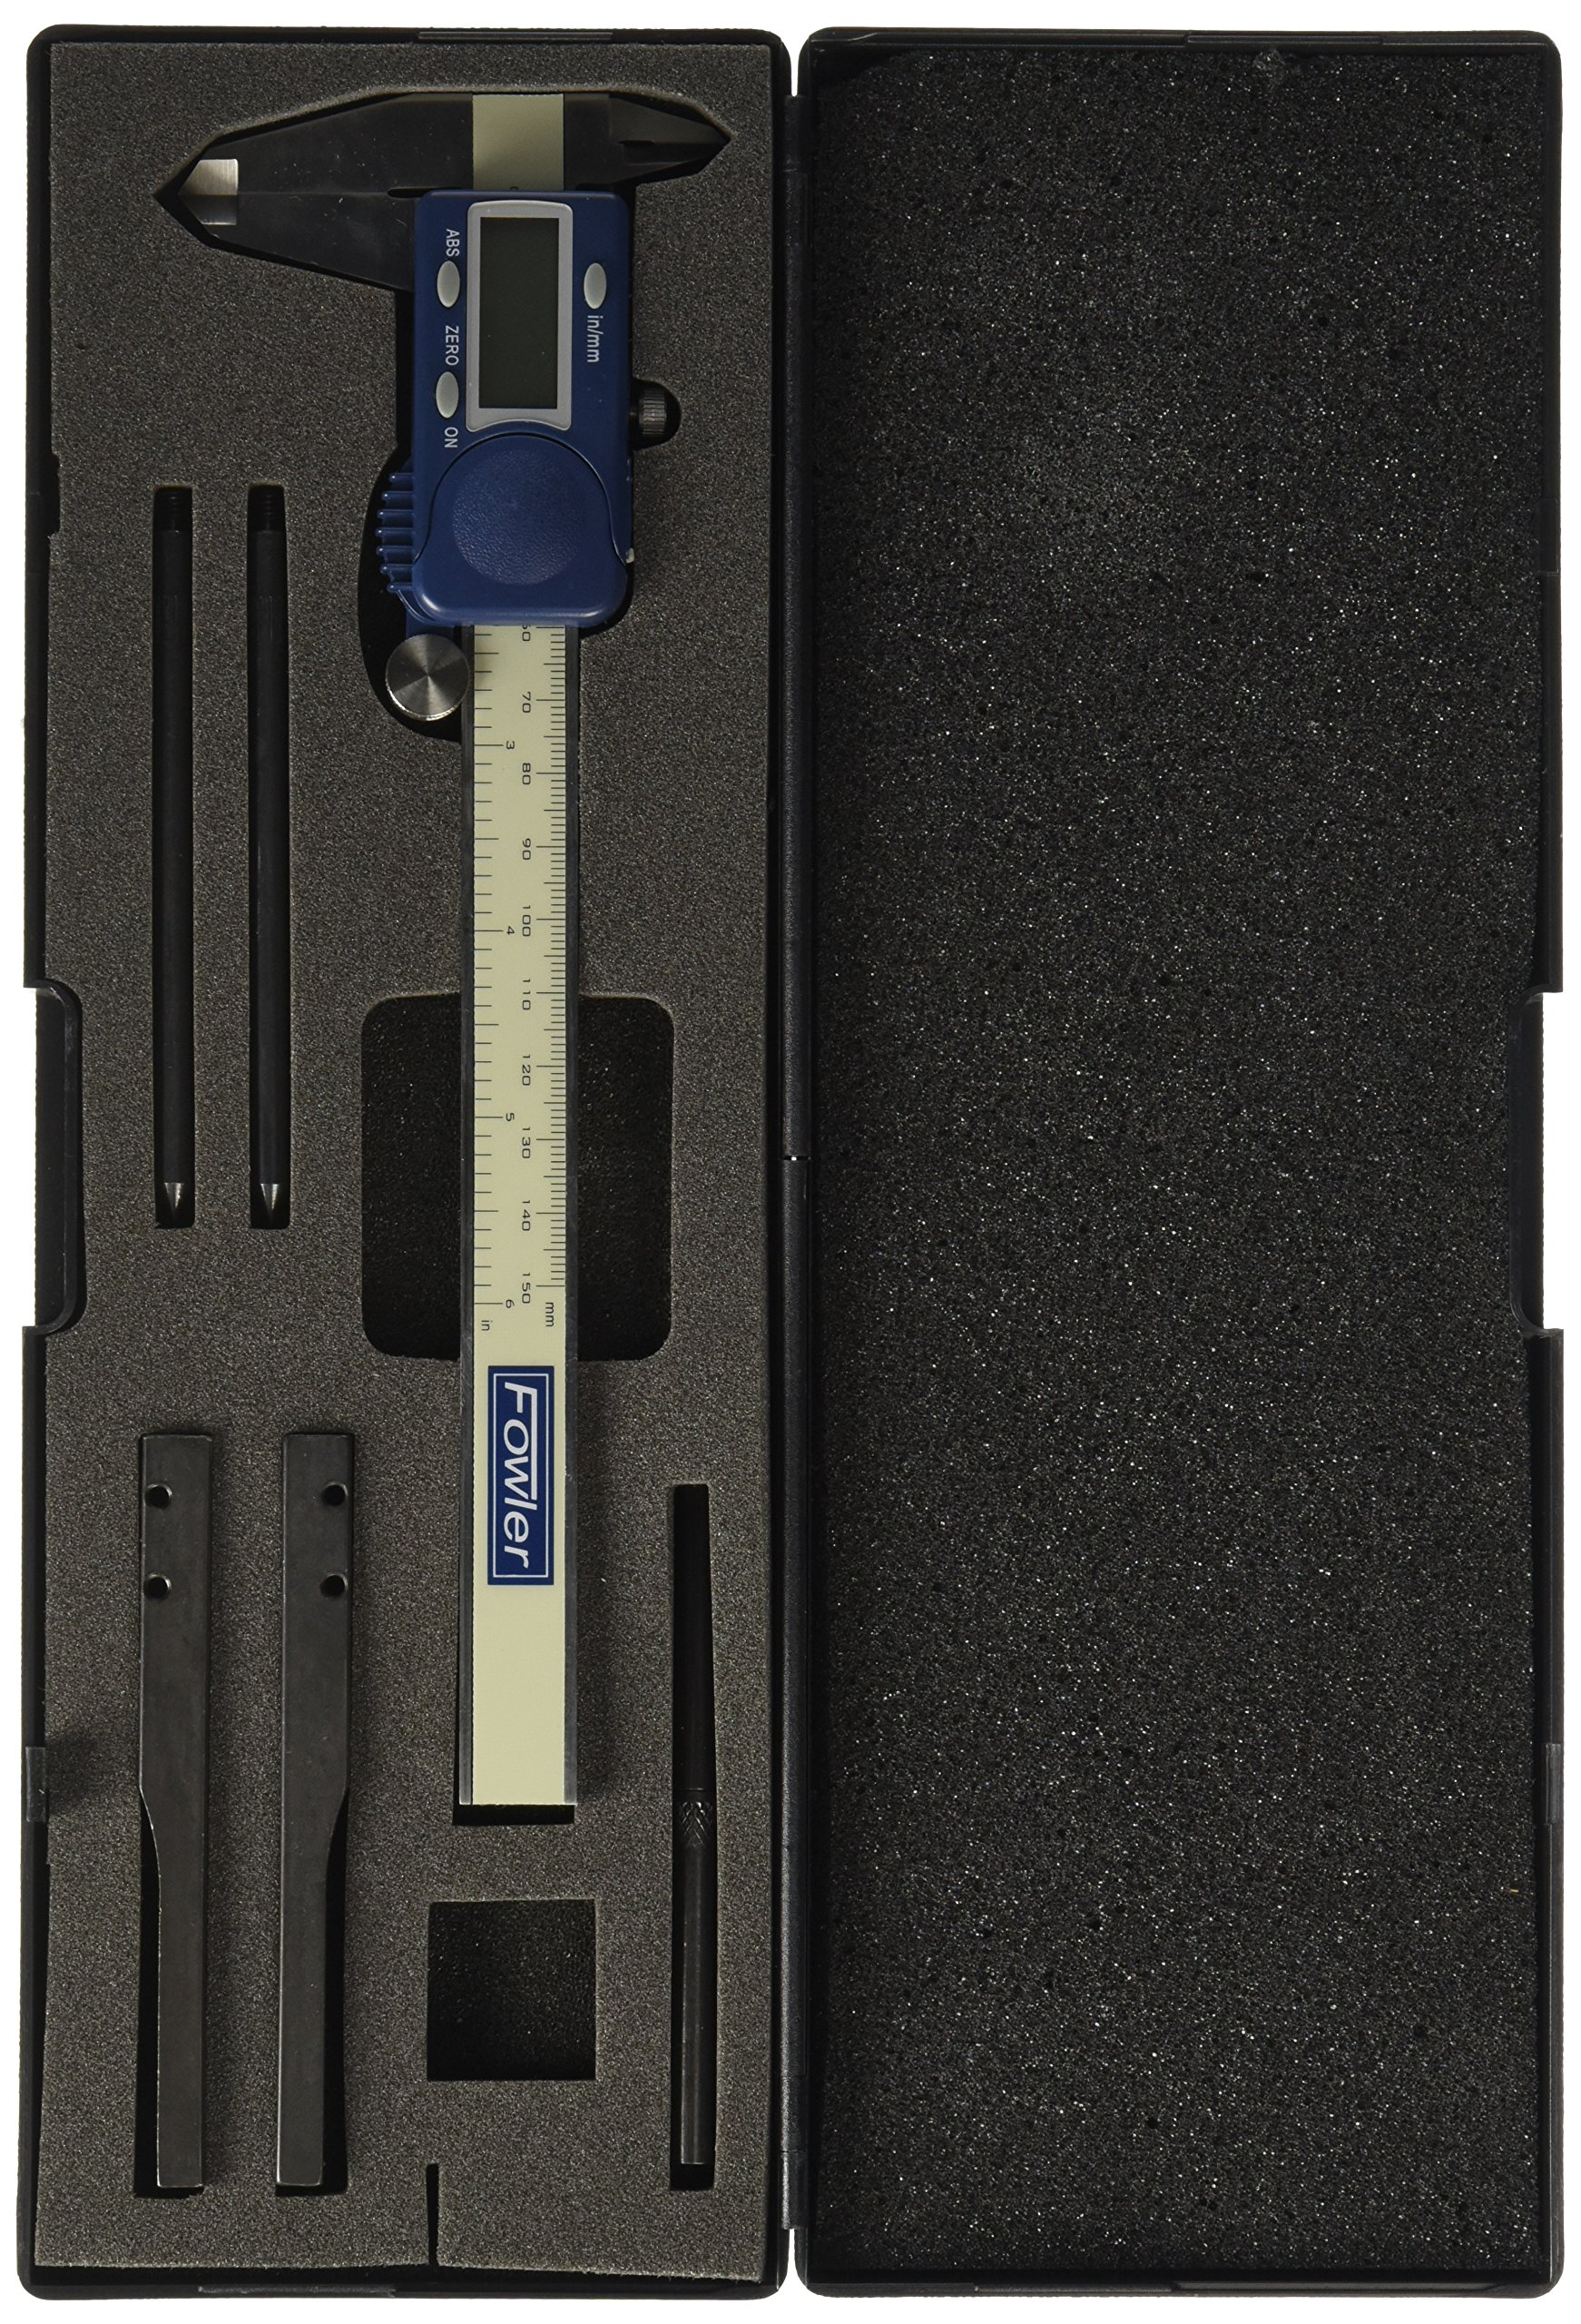 Fowler 74-101-888 Extended Range Drum/Rotor Measuring Kit with Xtra Value by Fowler & Nsk (Image #2)